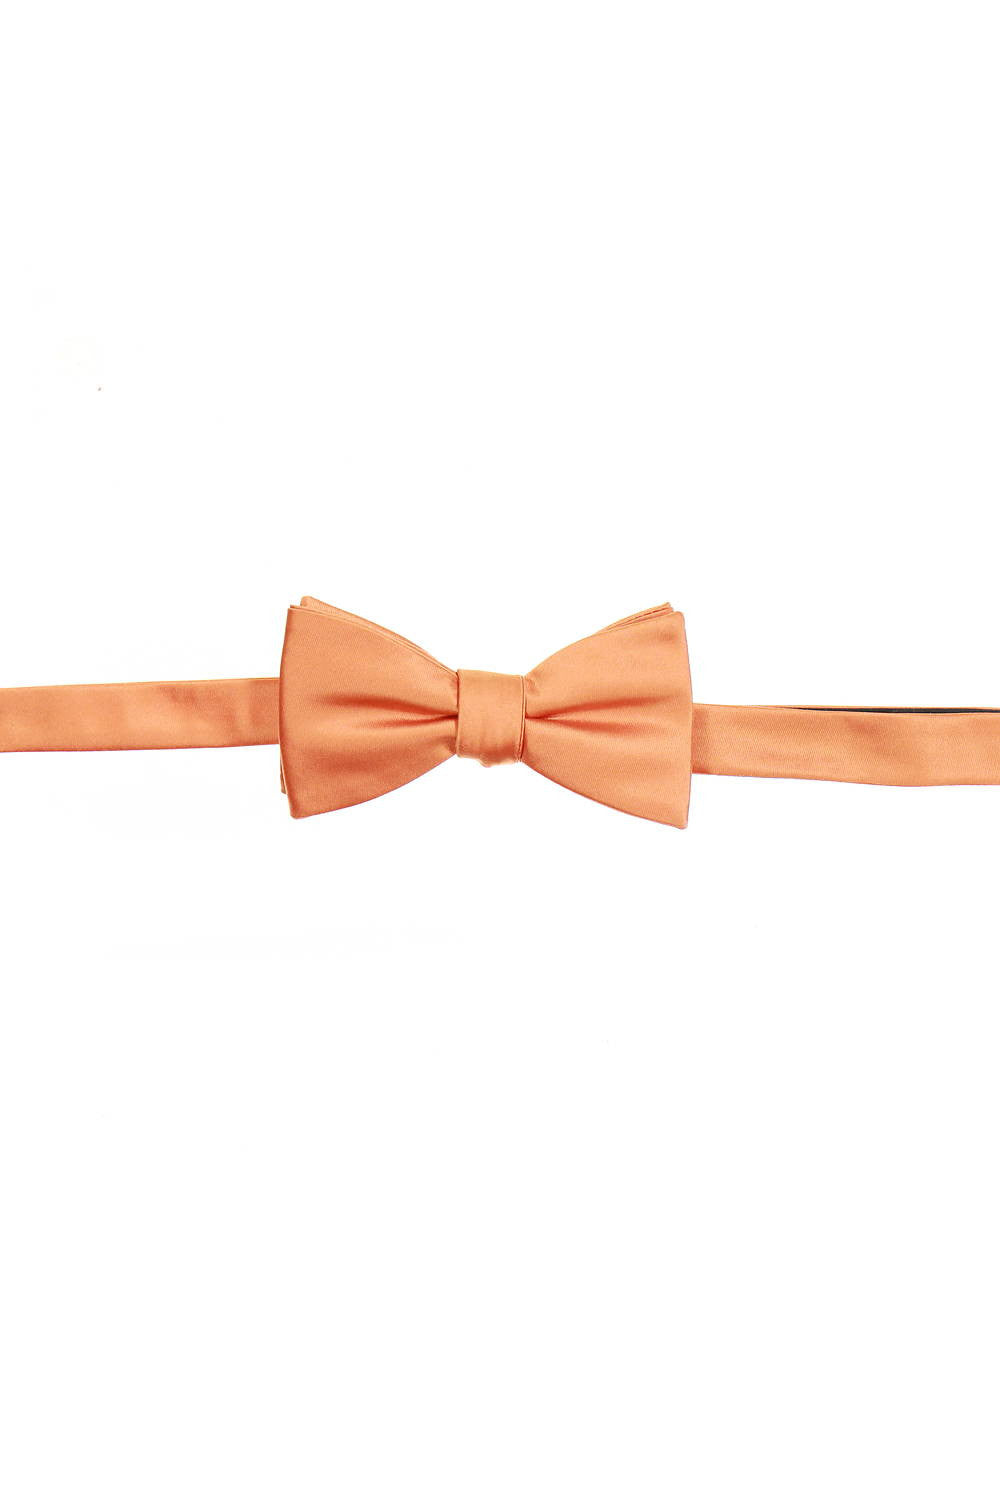 Countess Mara Mens Orange Pre-Tied Bow Tie